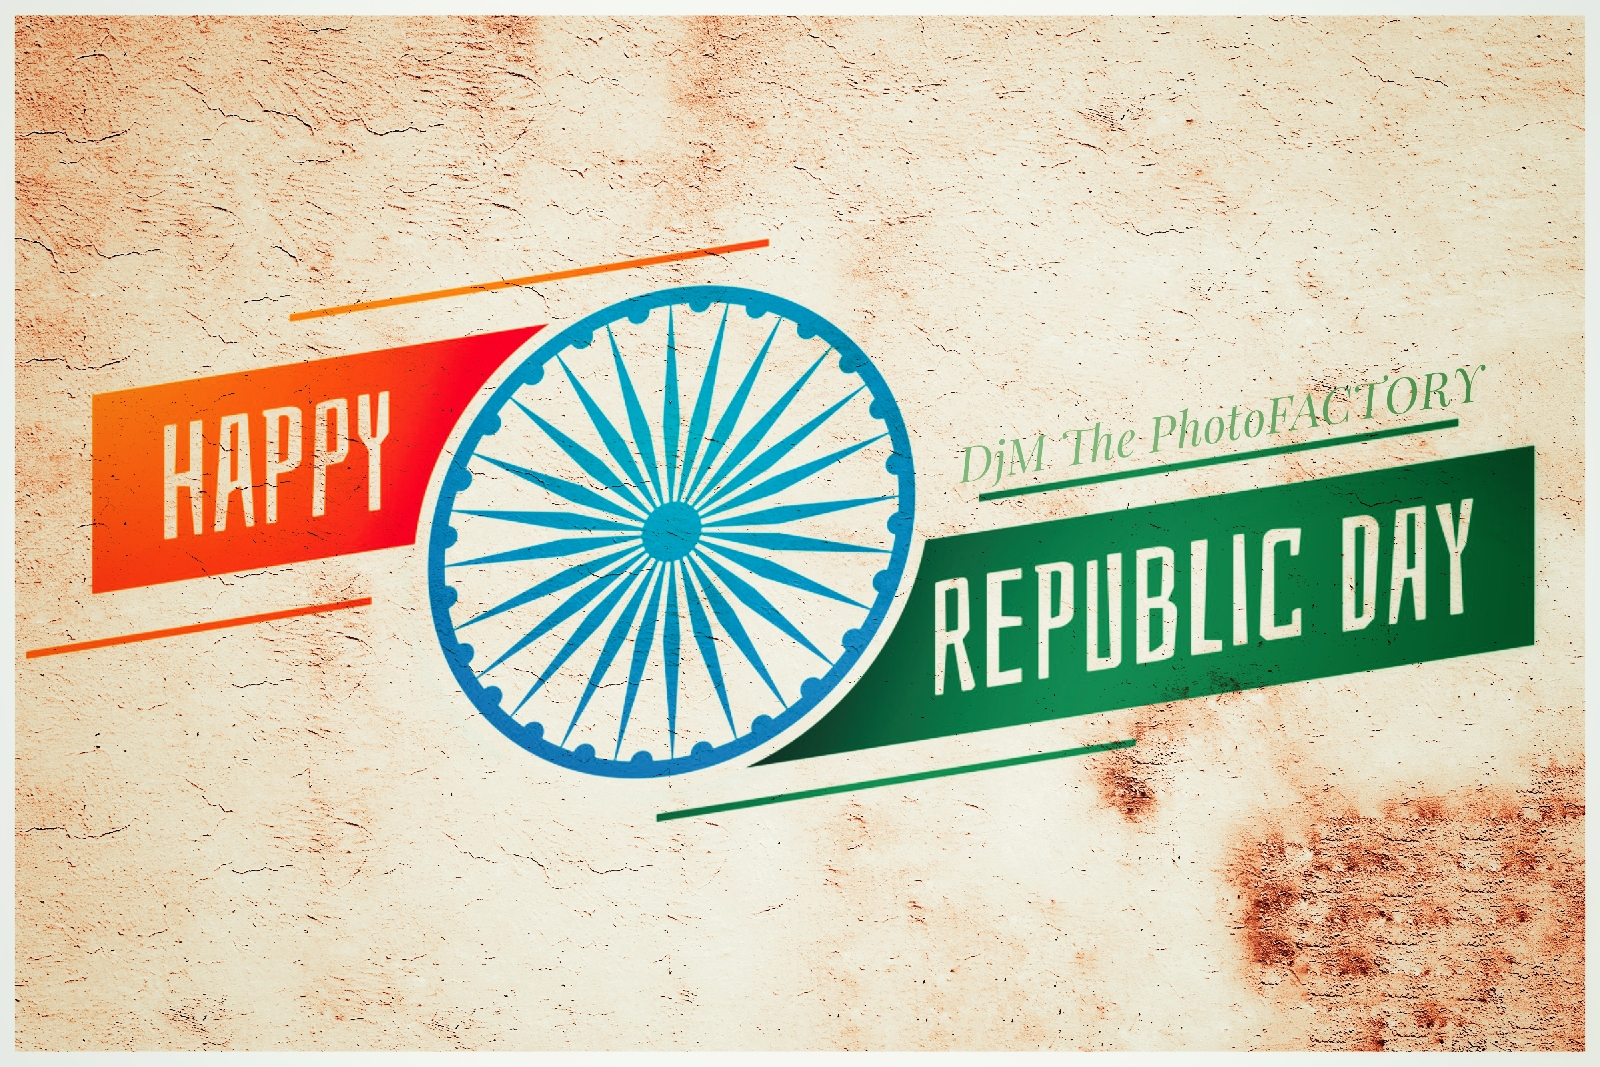 Happy republic day 2020 wishes images, Happy ganatantra Diwas 2020 wishes images, WhatsApp status, greetings and patriotic Facebook posts.